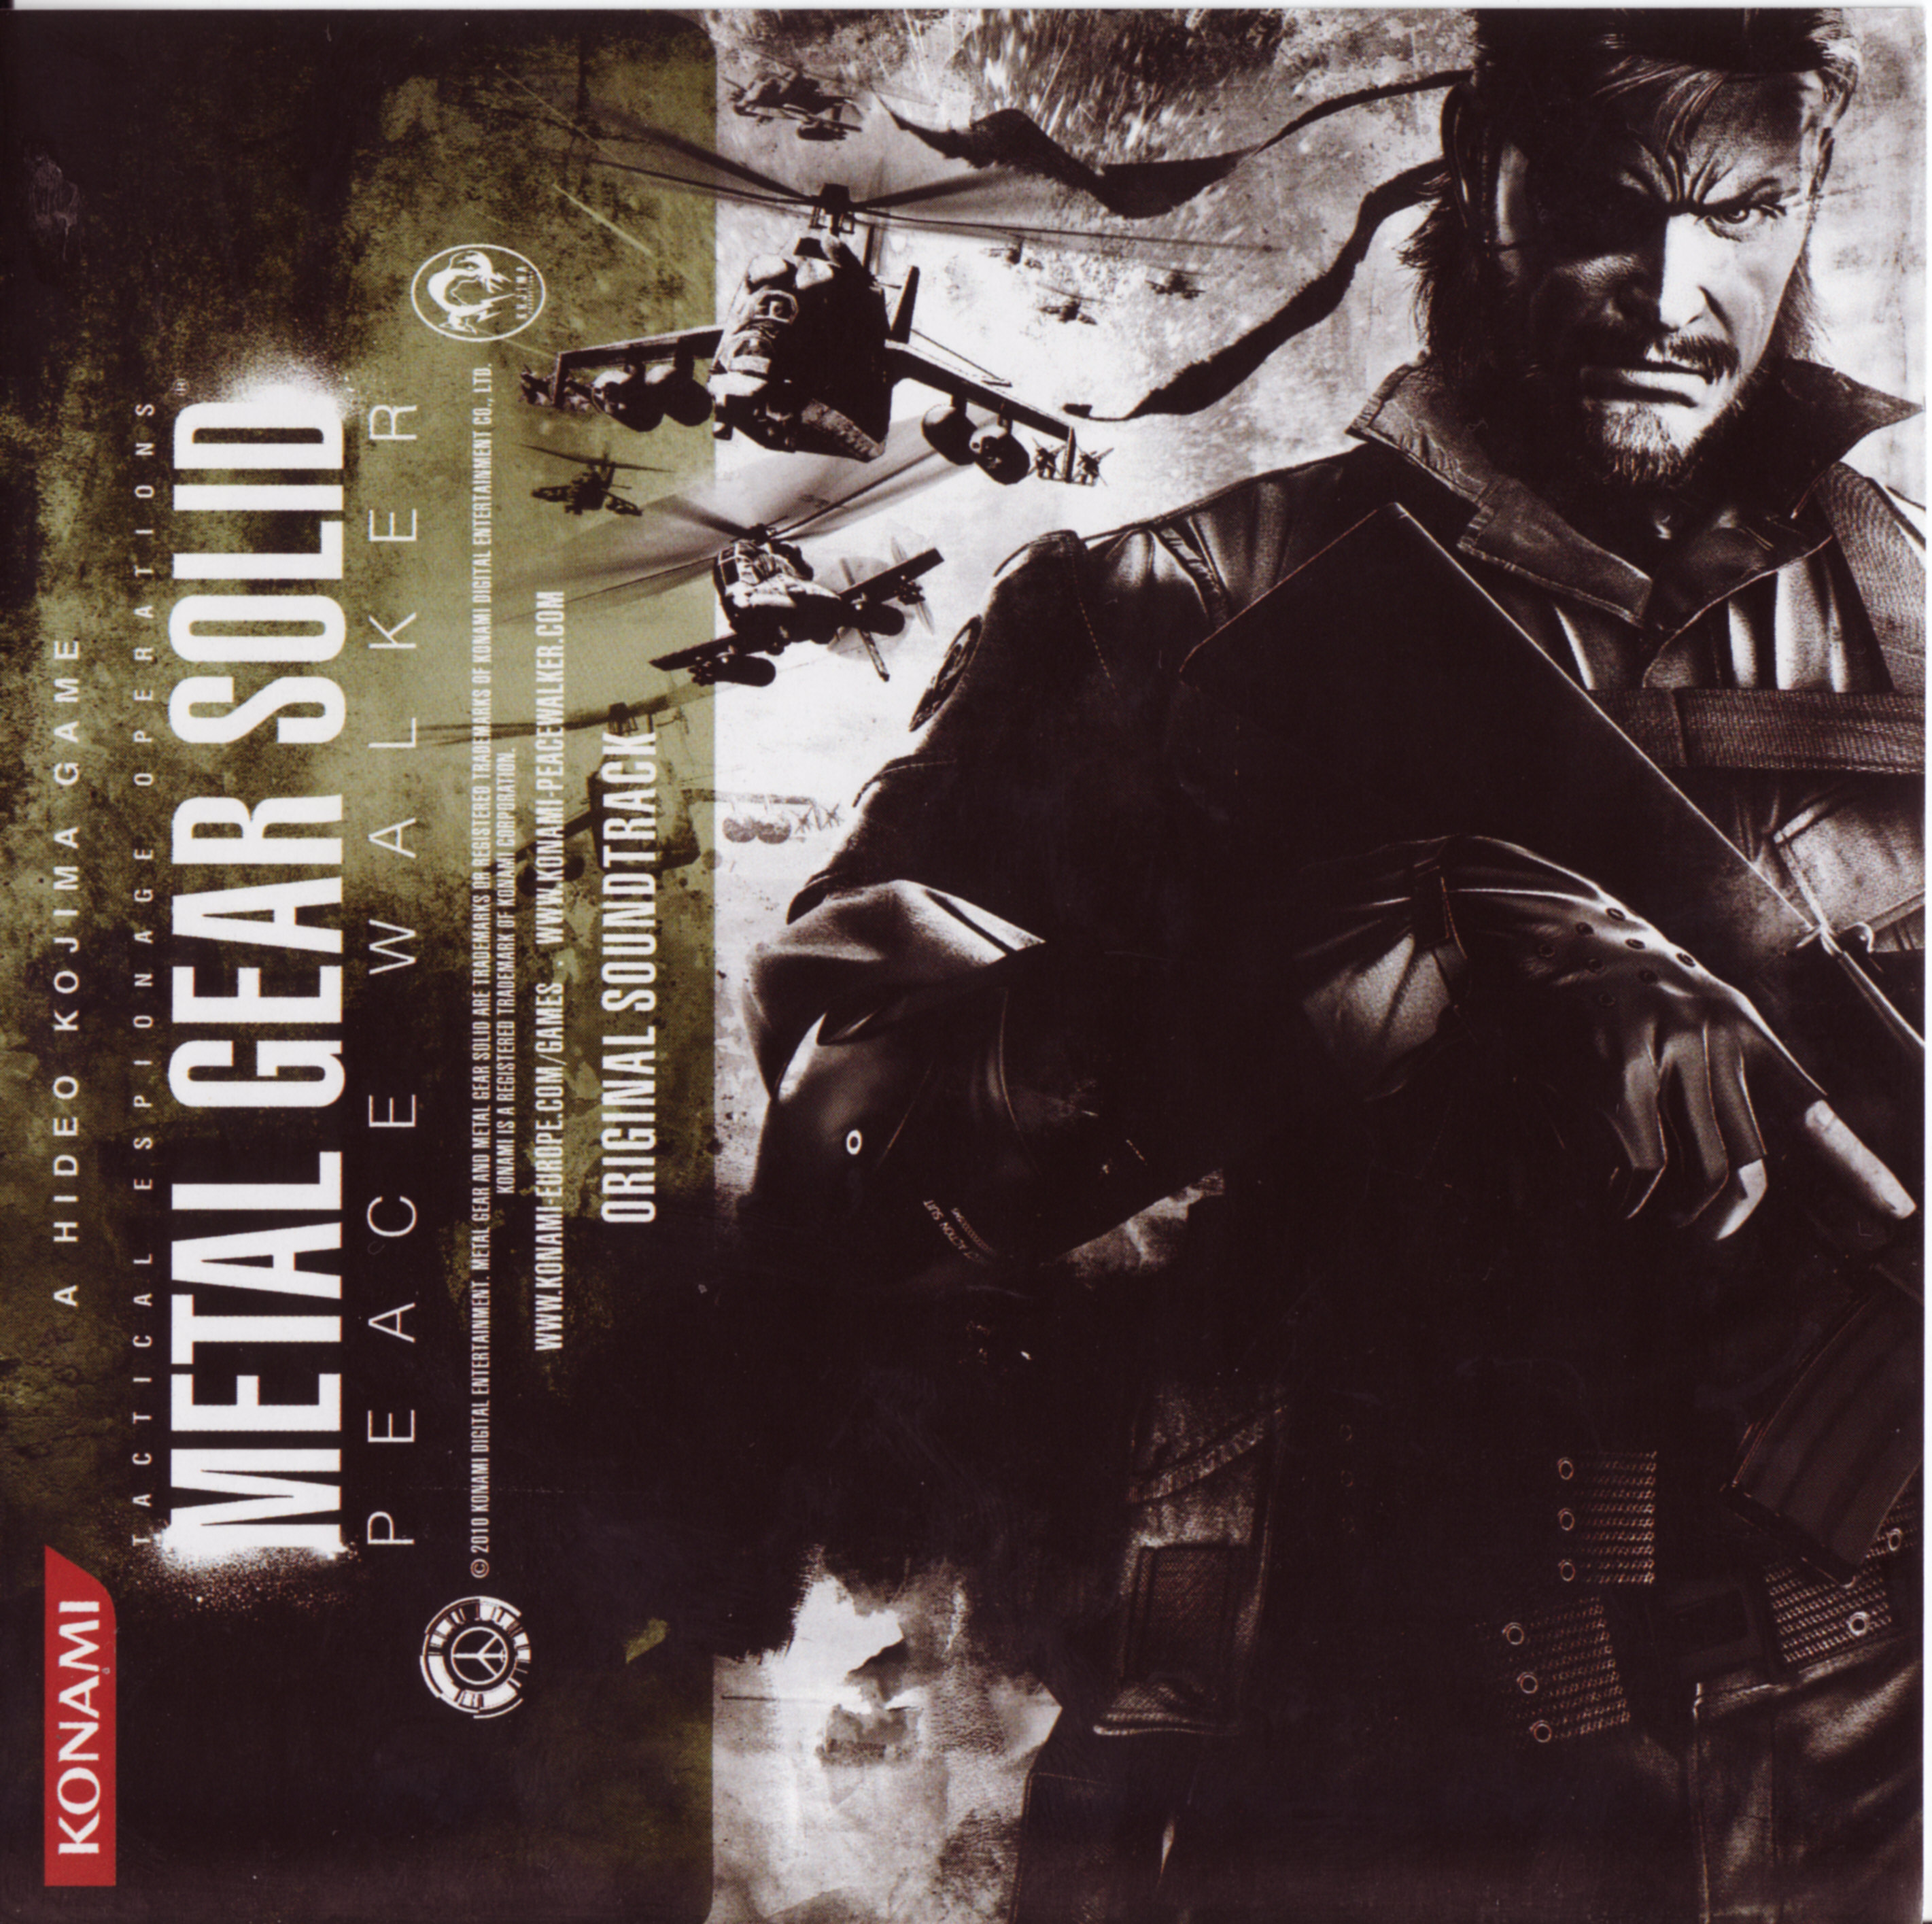 mgs peace walker soundtrack download